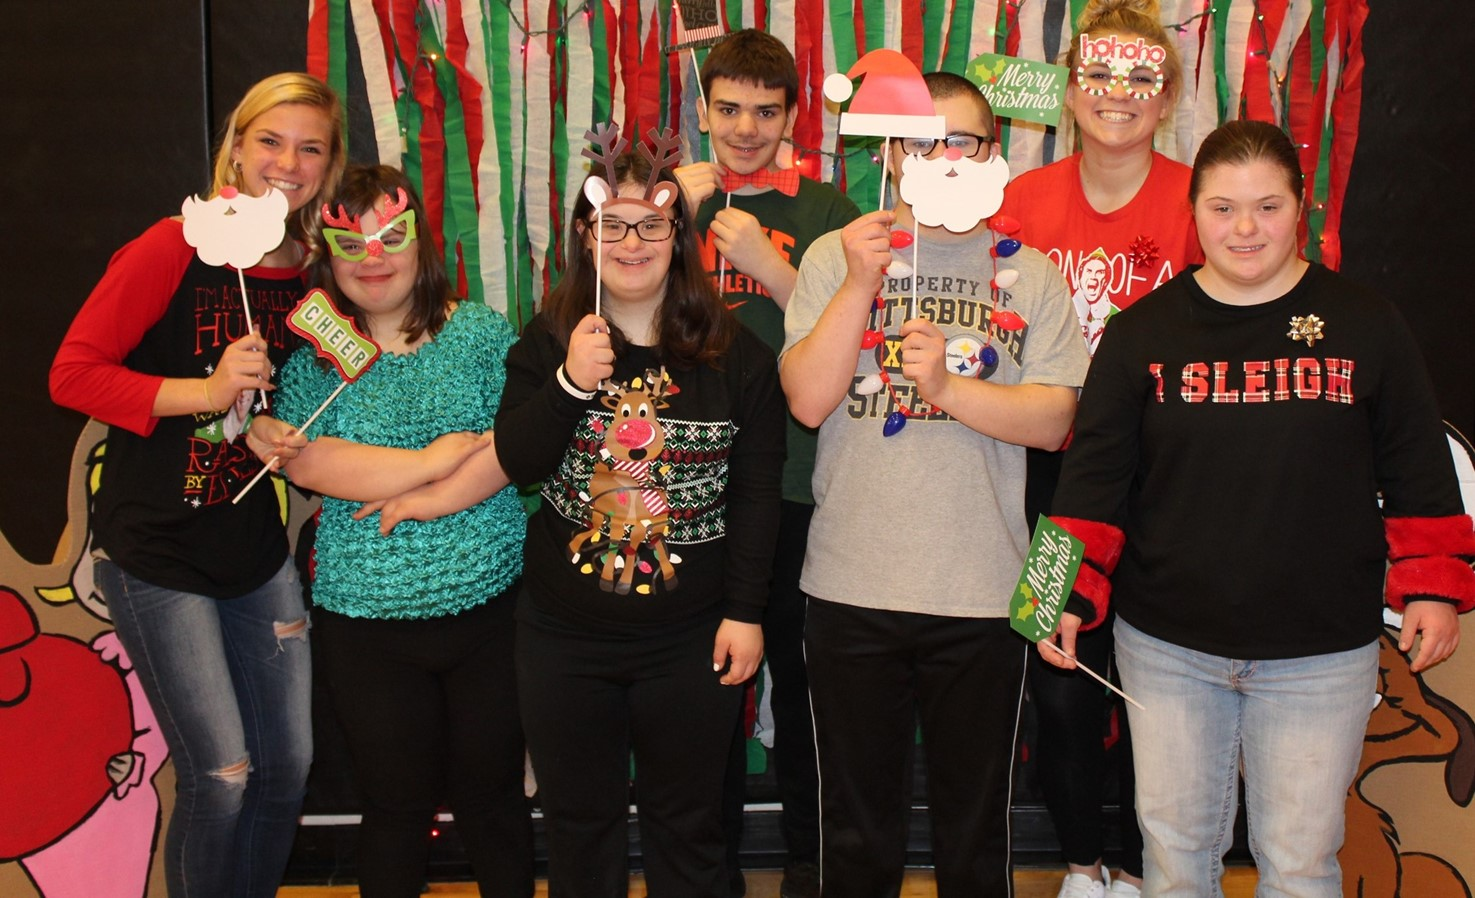 BPHS students in the Holiday Photo Booth